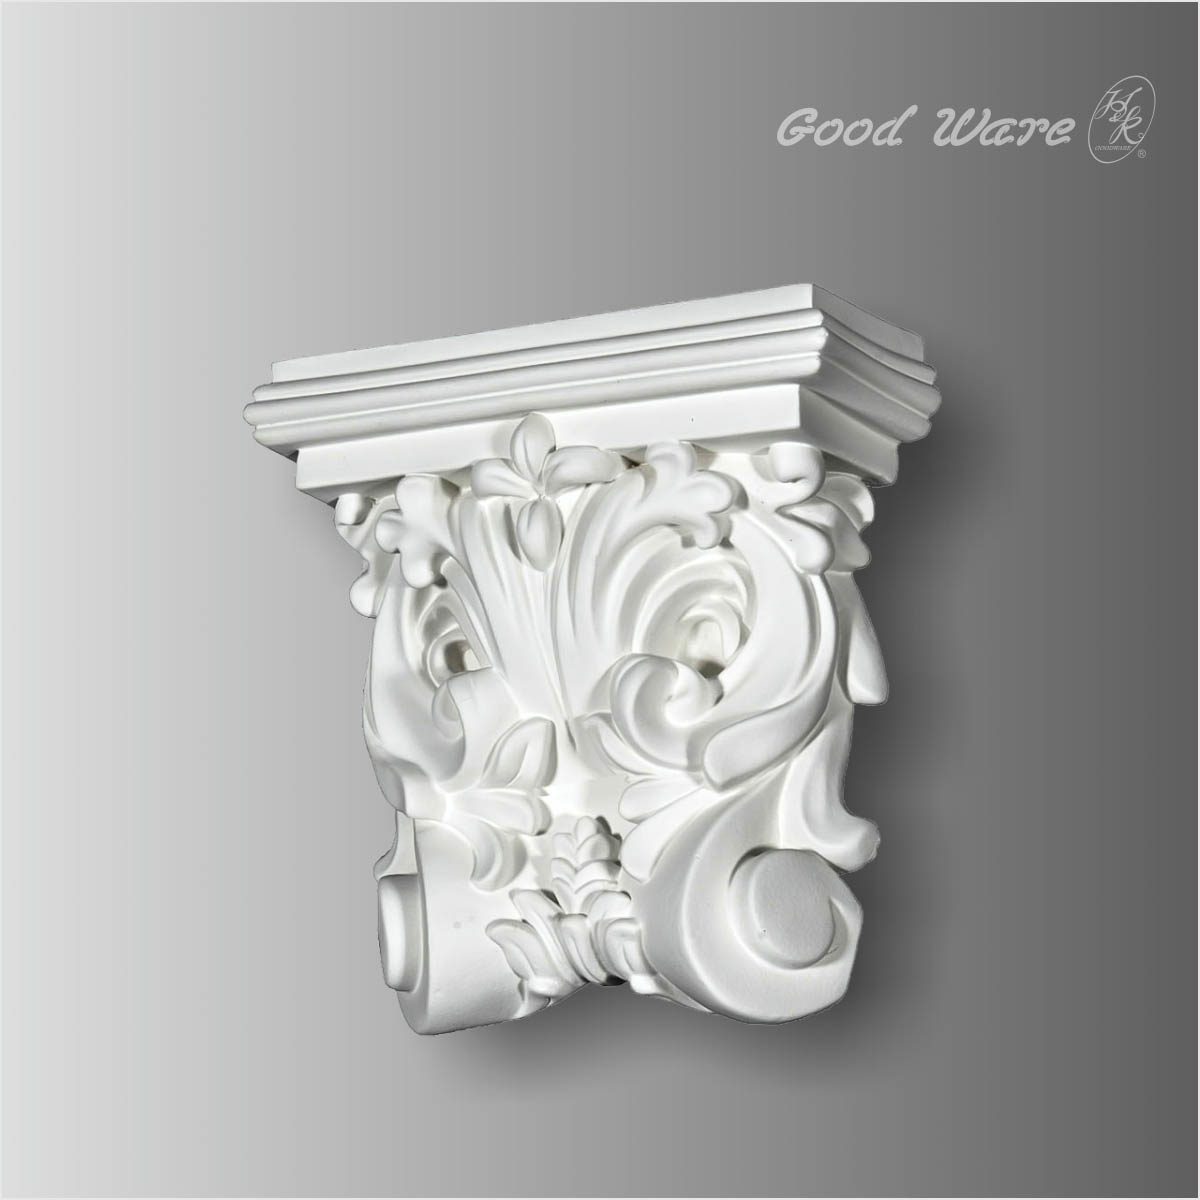 Polyurethane floral wall corbels and brackets